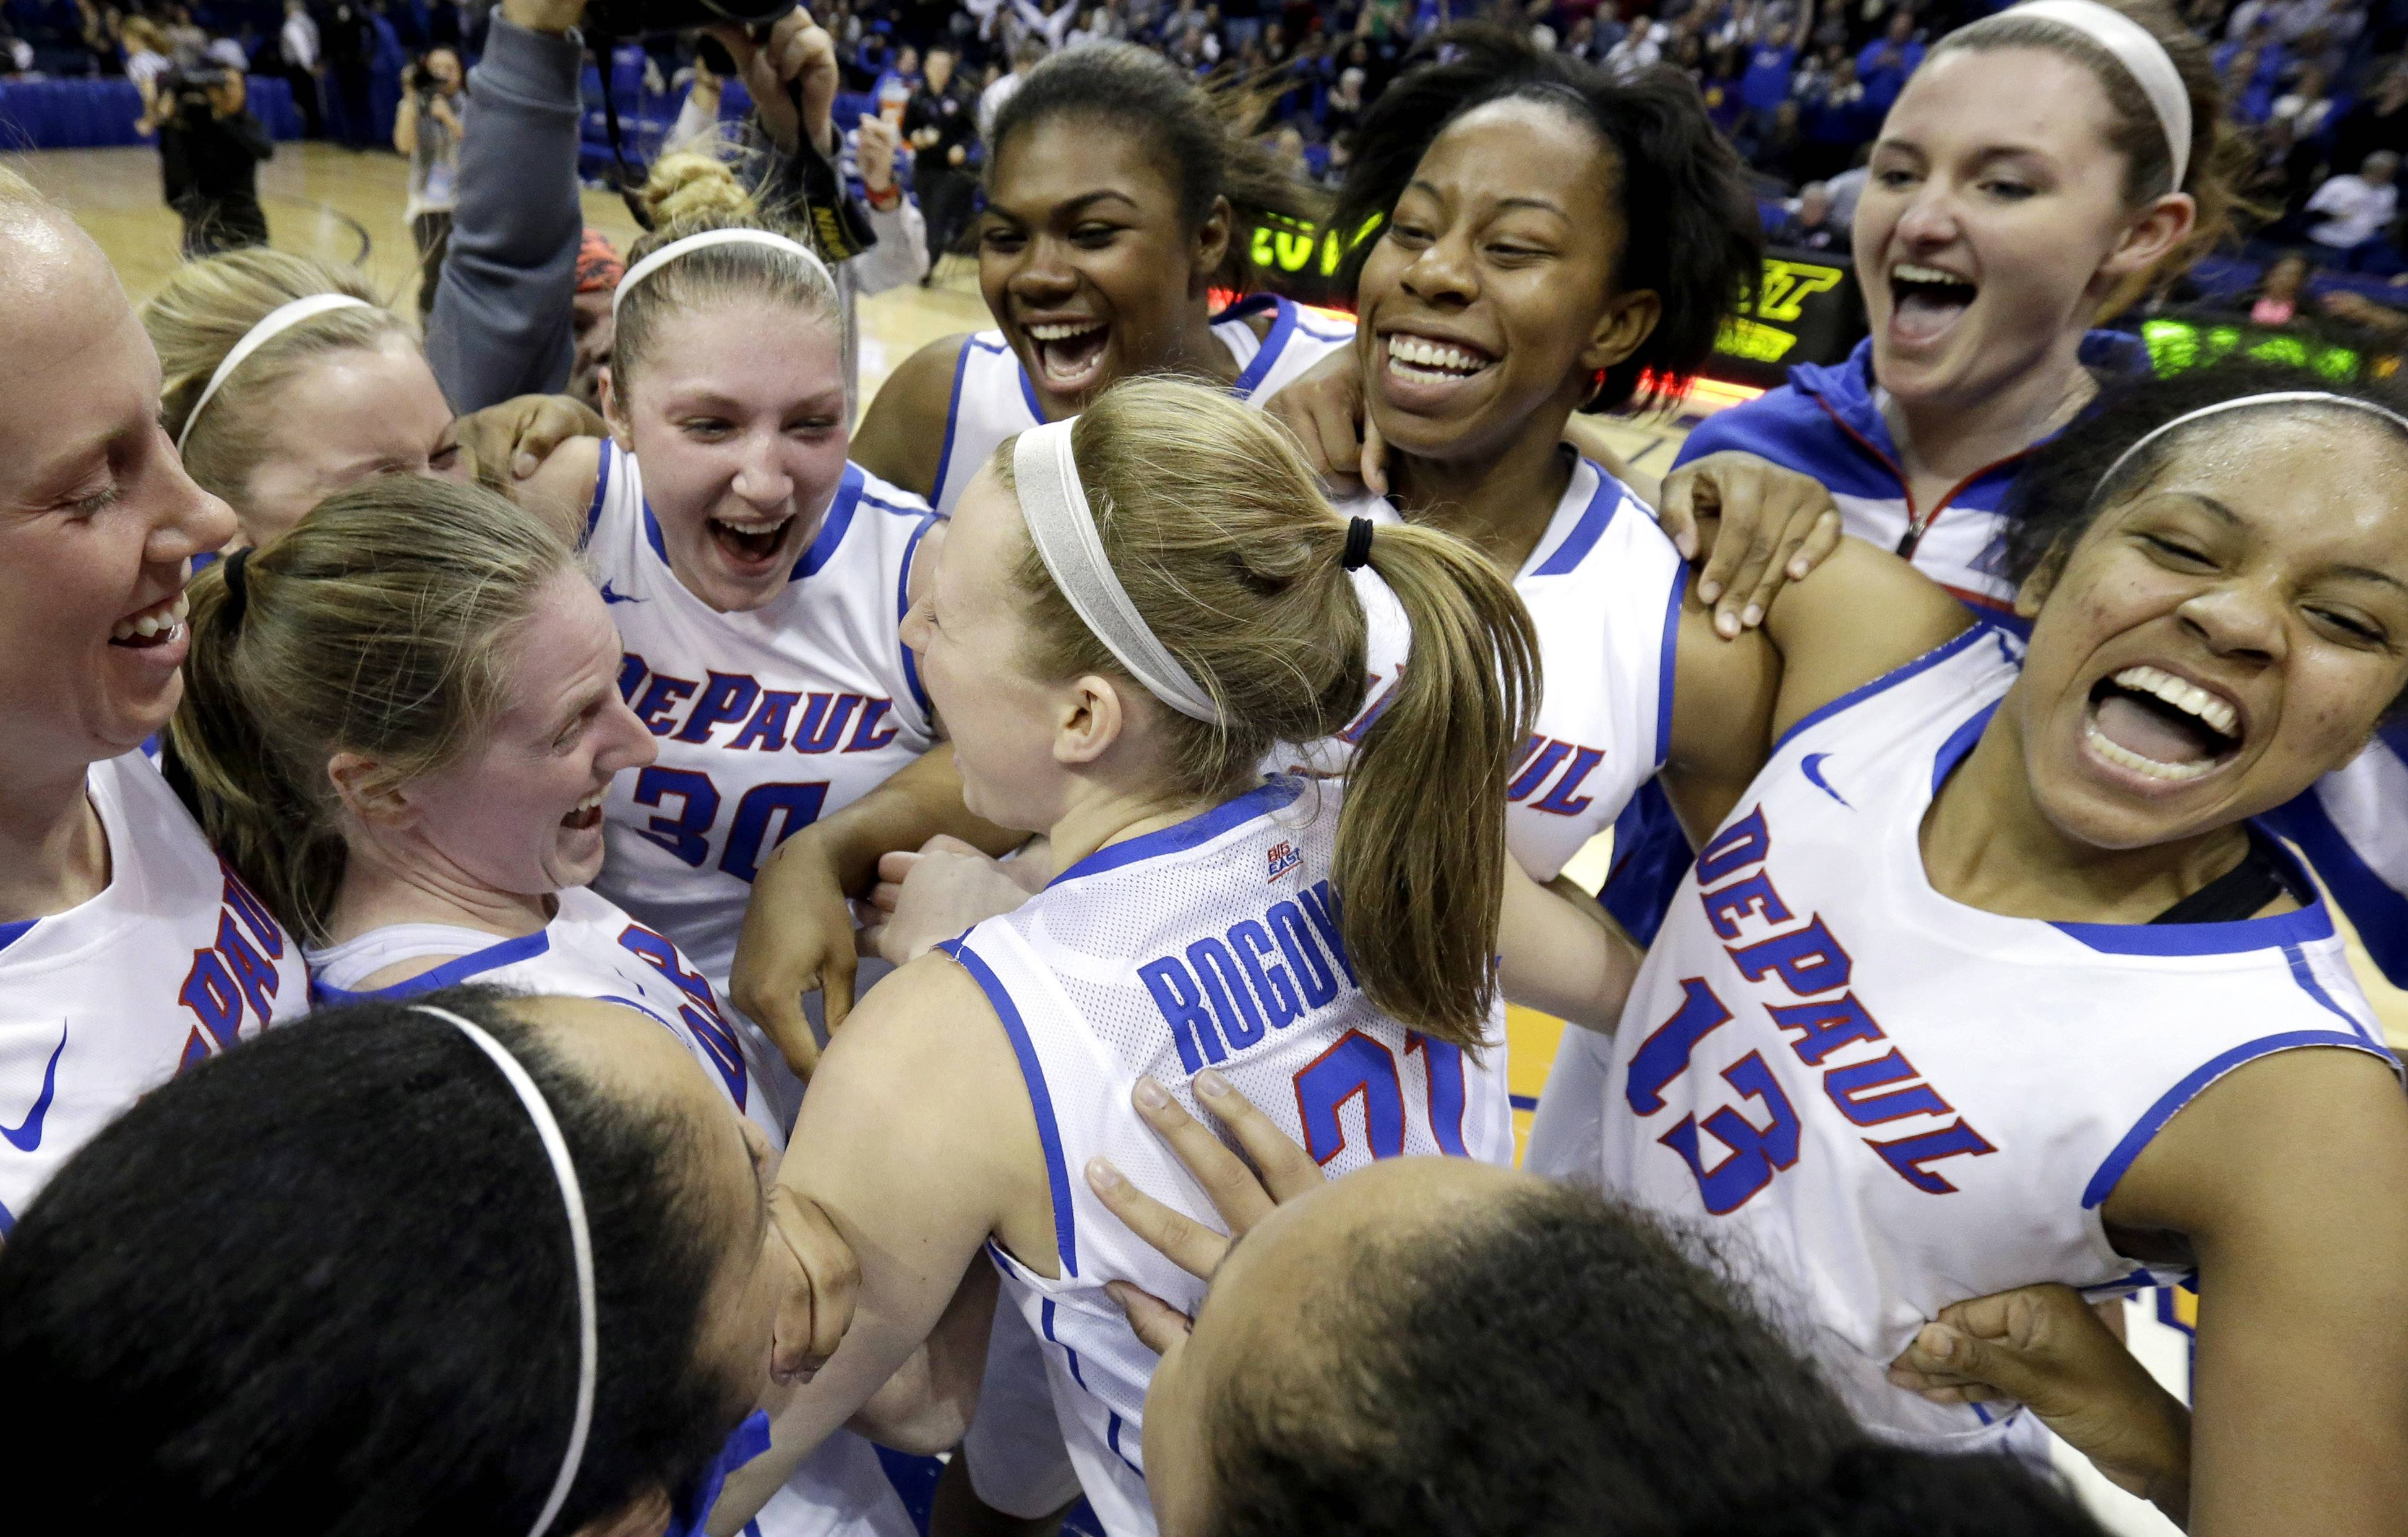 DePaul players celebrate after defeating St. John's last week in the final of the Big East women's tournament at the Allstate Arena. DePaul will face Oklahoma on Saturday in the first round of the NCAA Tournament.